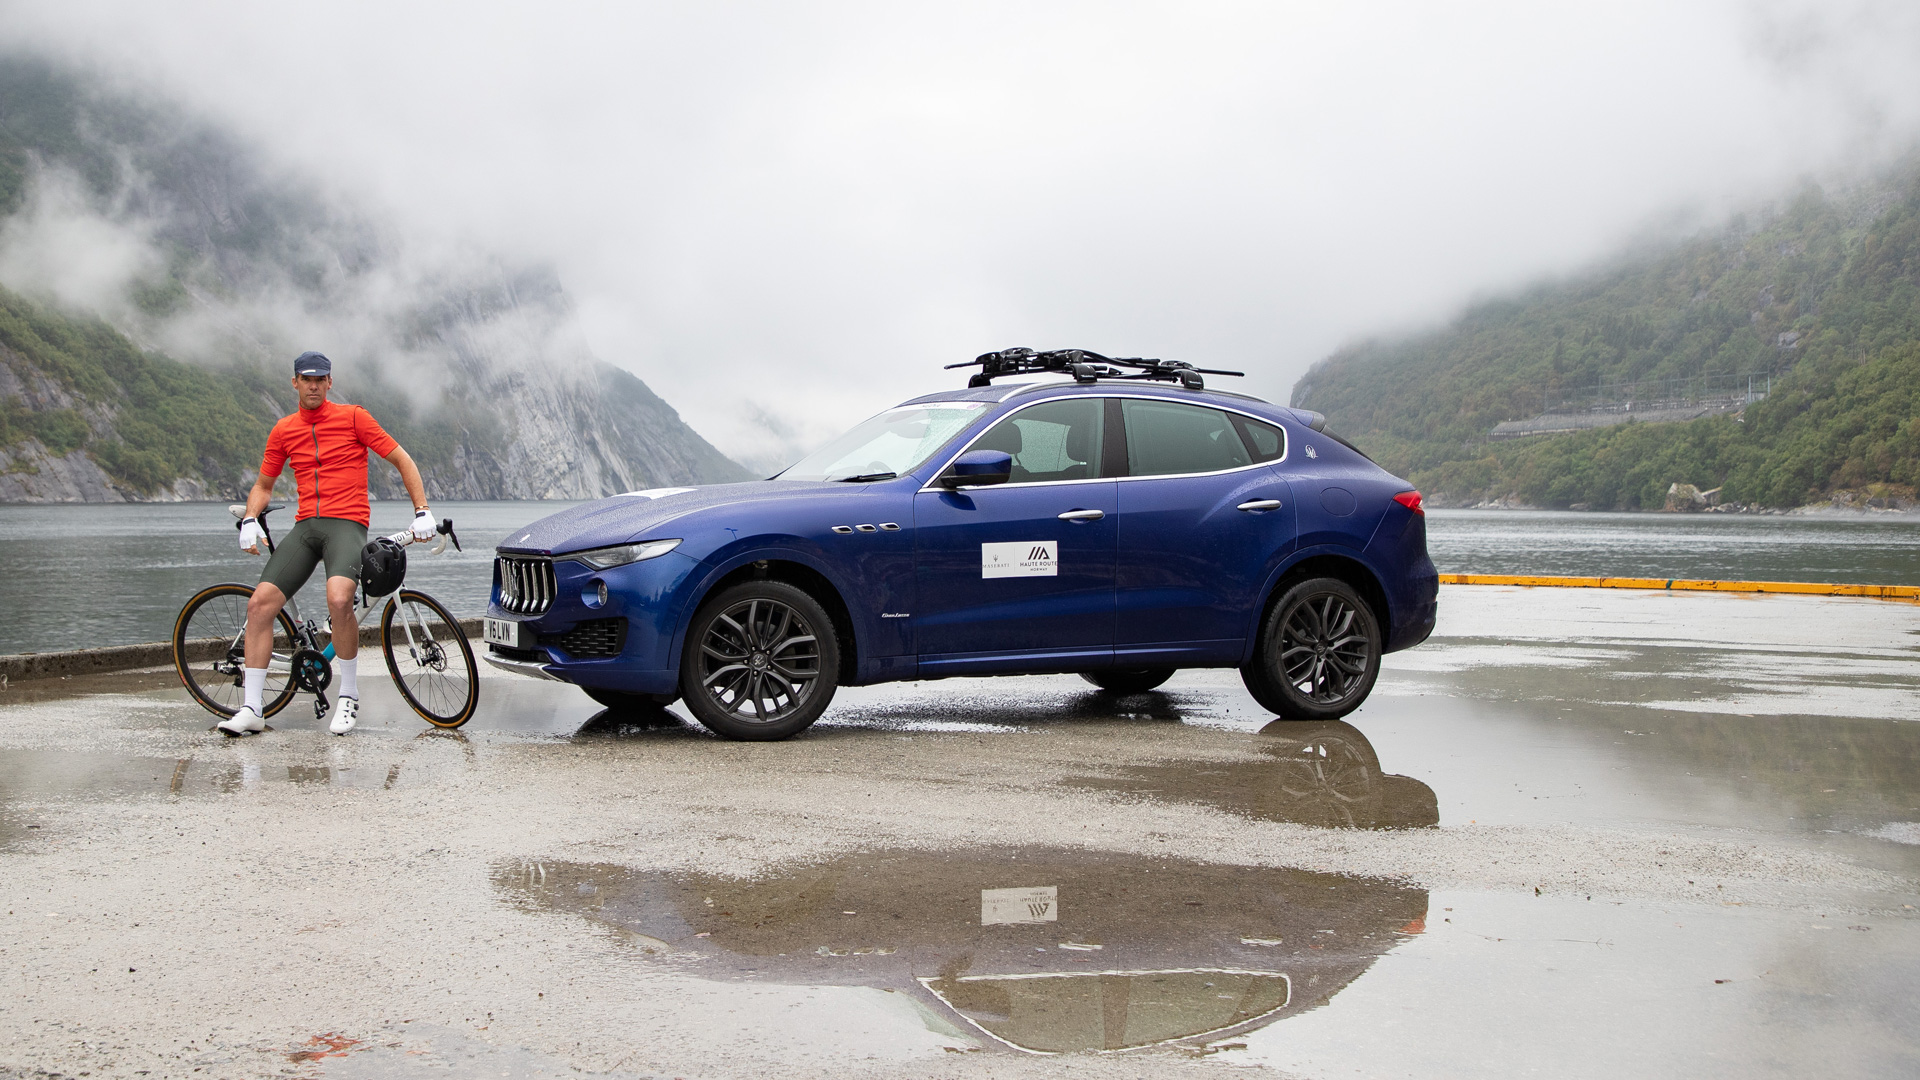 Haute Route Norway 2018 - A cyclist and a Levante SUV in the Stavanger region's setting